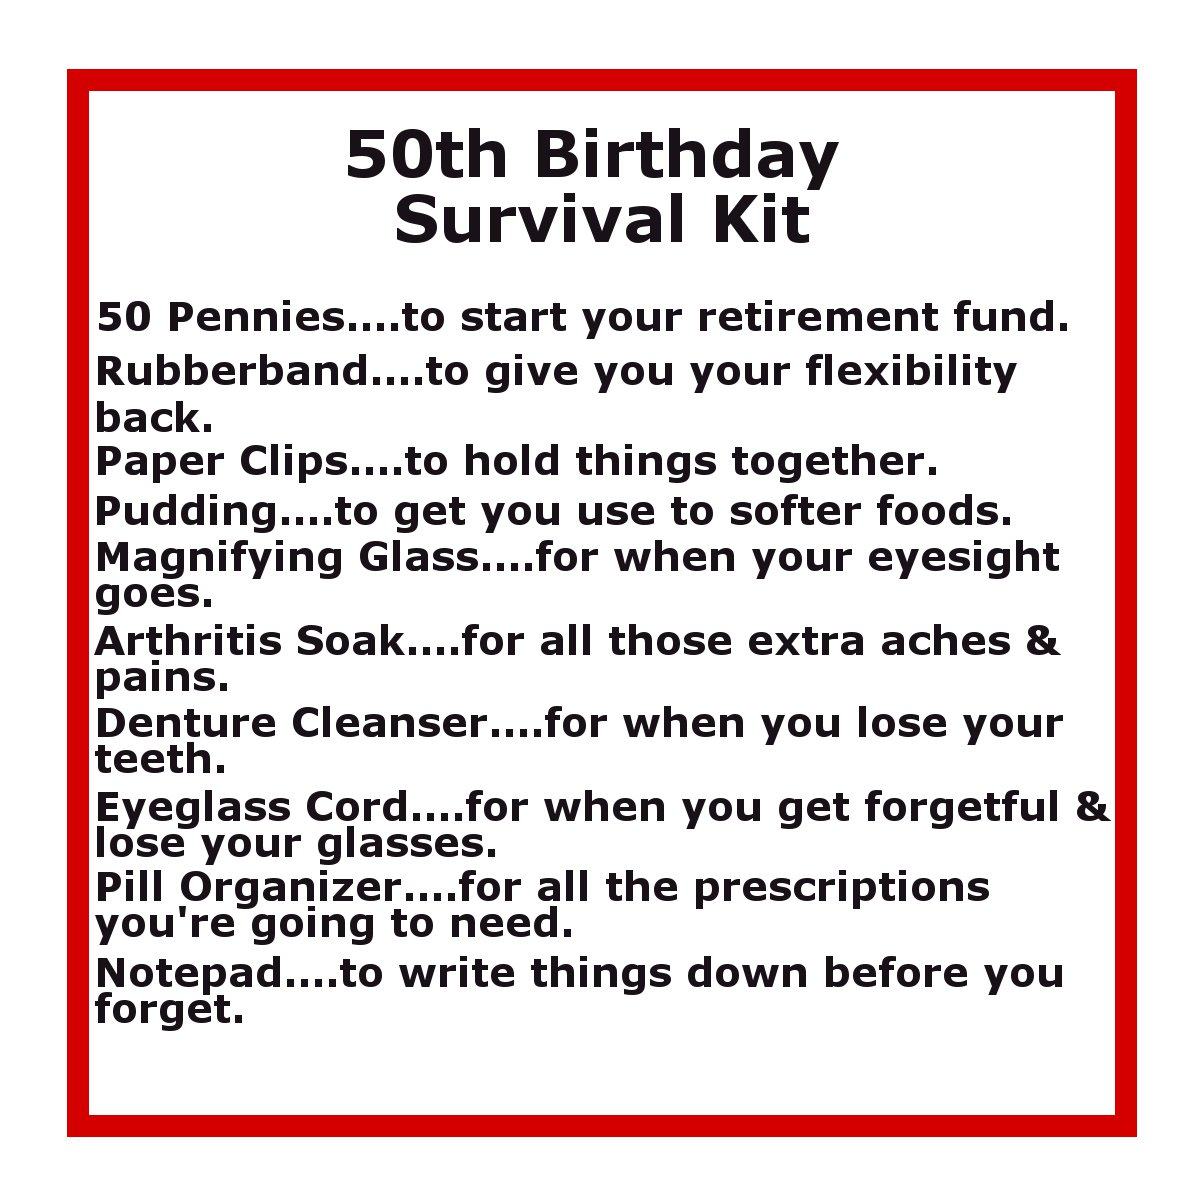 50th-birthday-survivial-kit-gag-gift